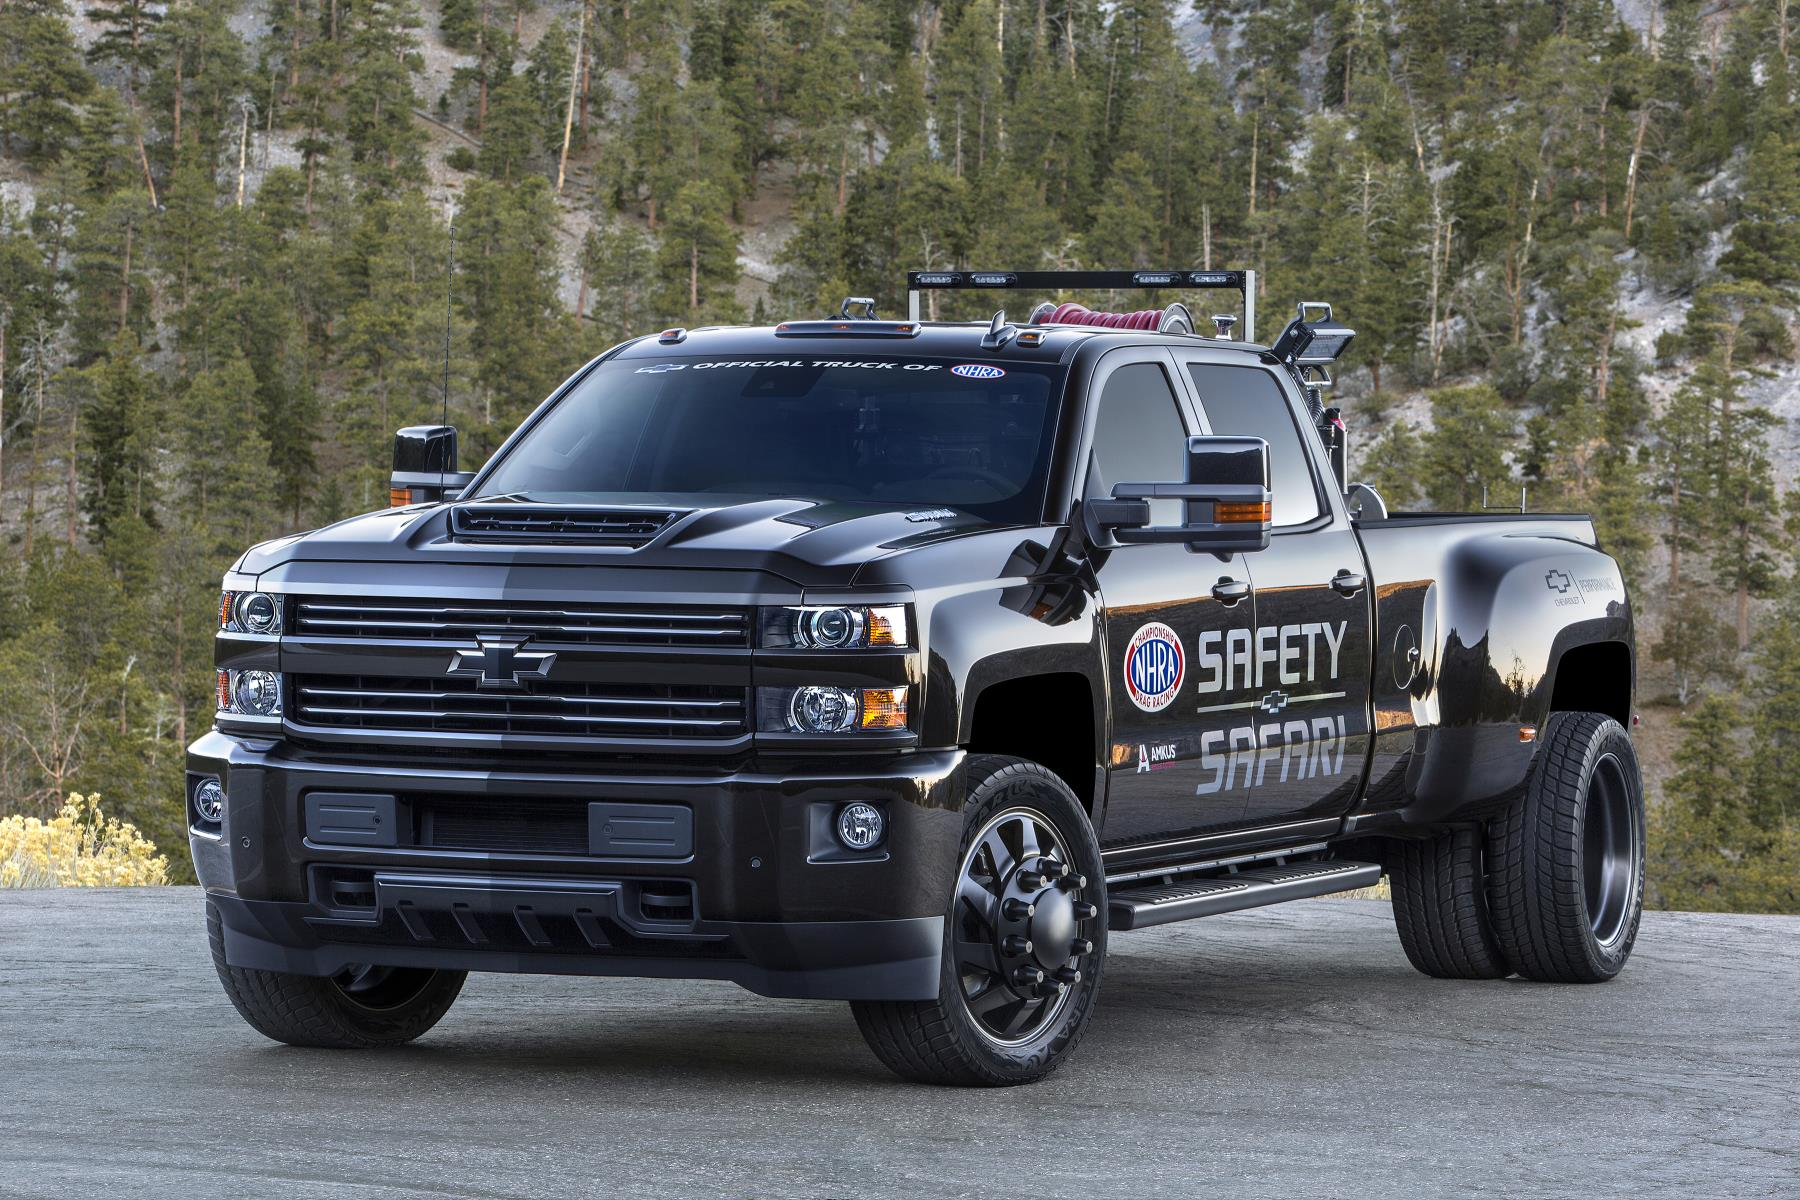 2018 CHEVROLET SILVERADO 3500HD NHRA SAFETY SAFARI CONCEPT ...